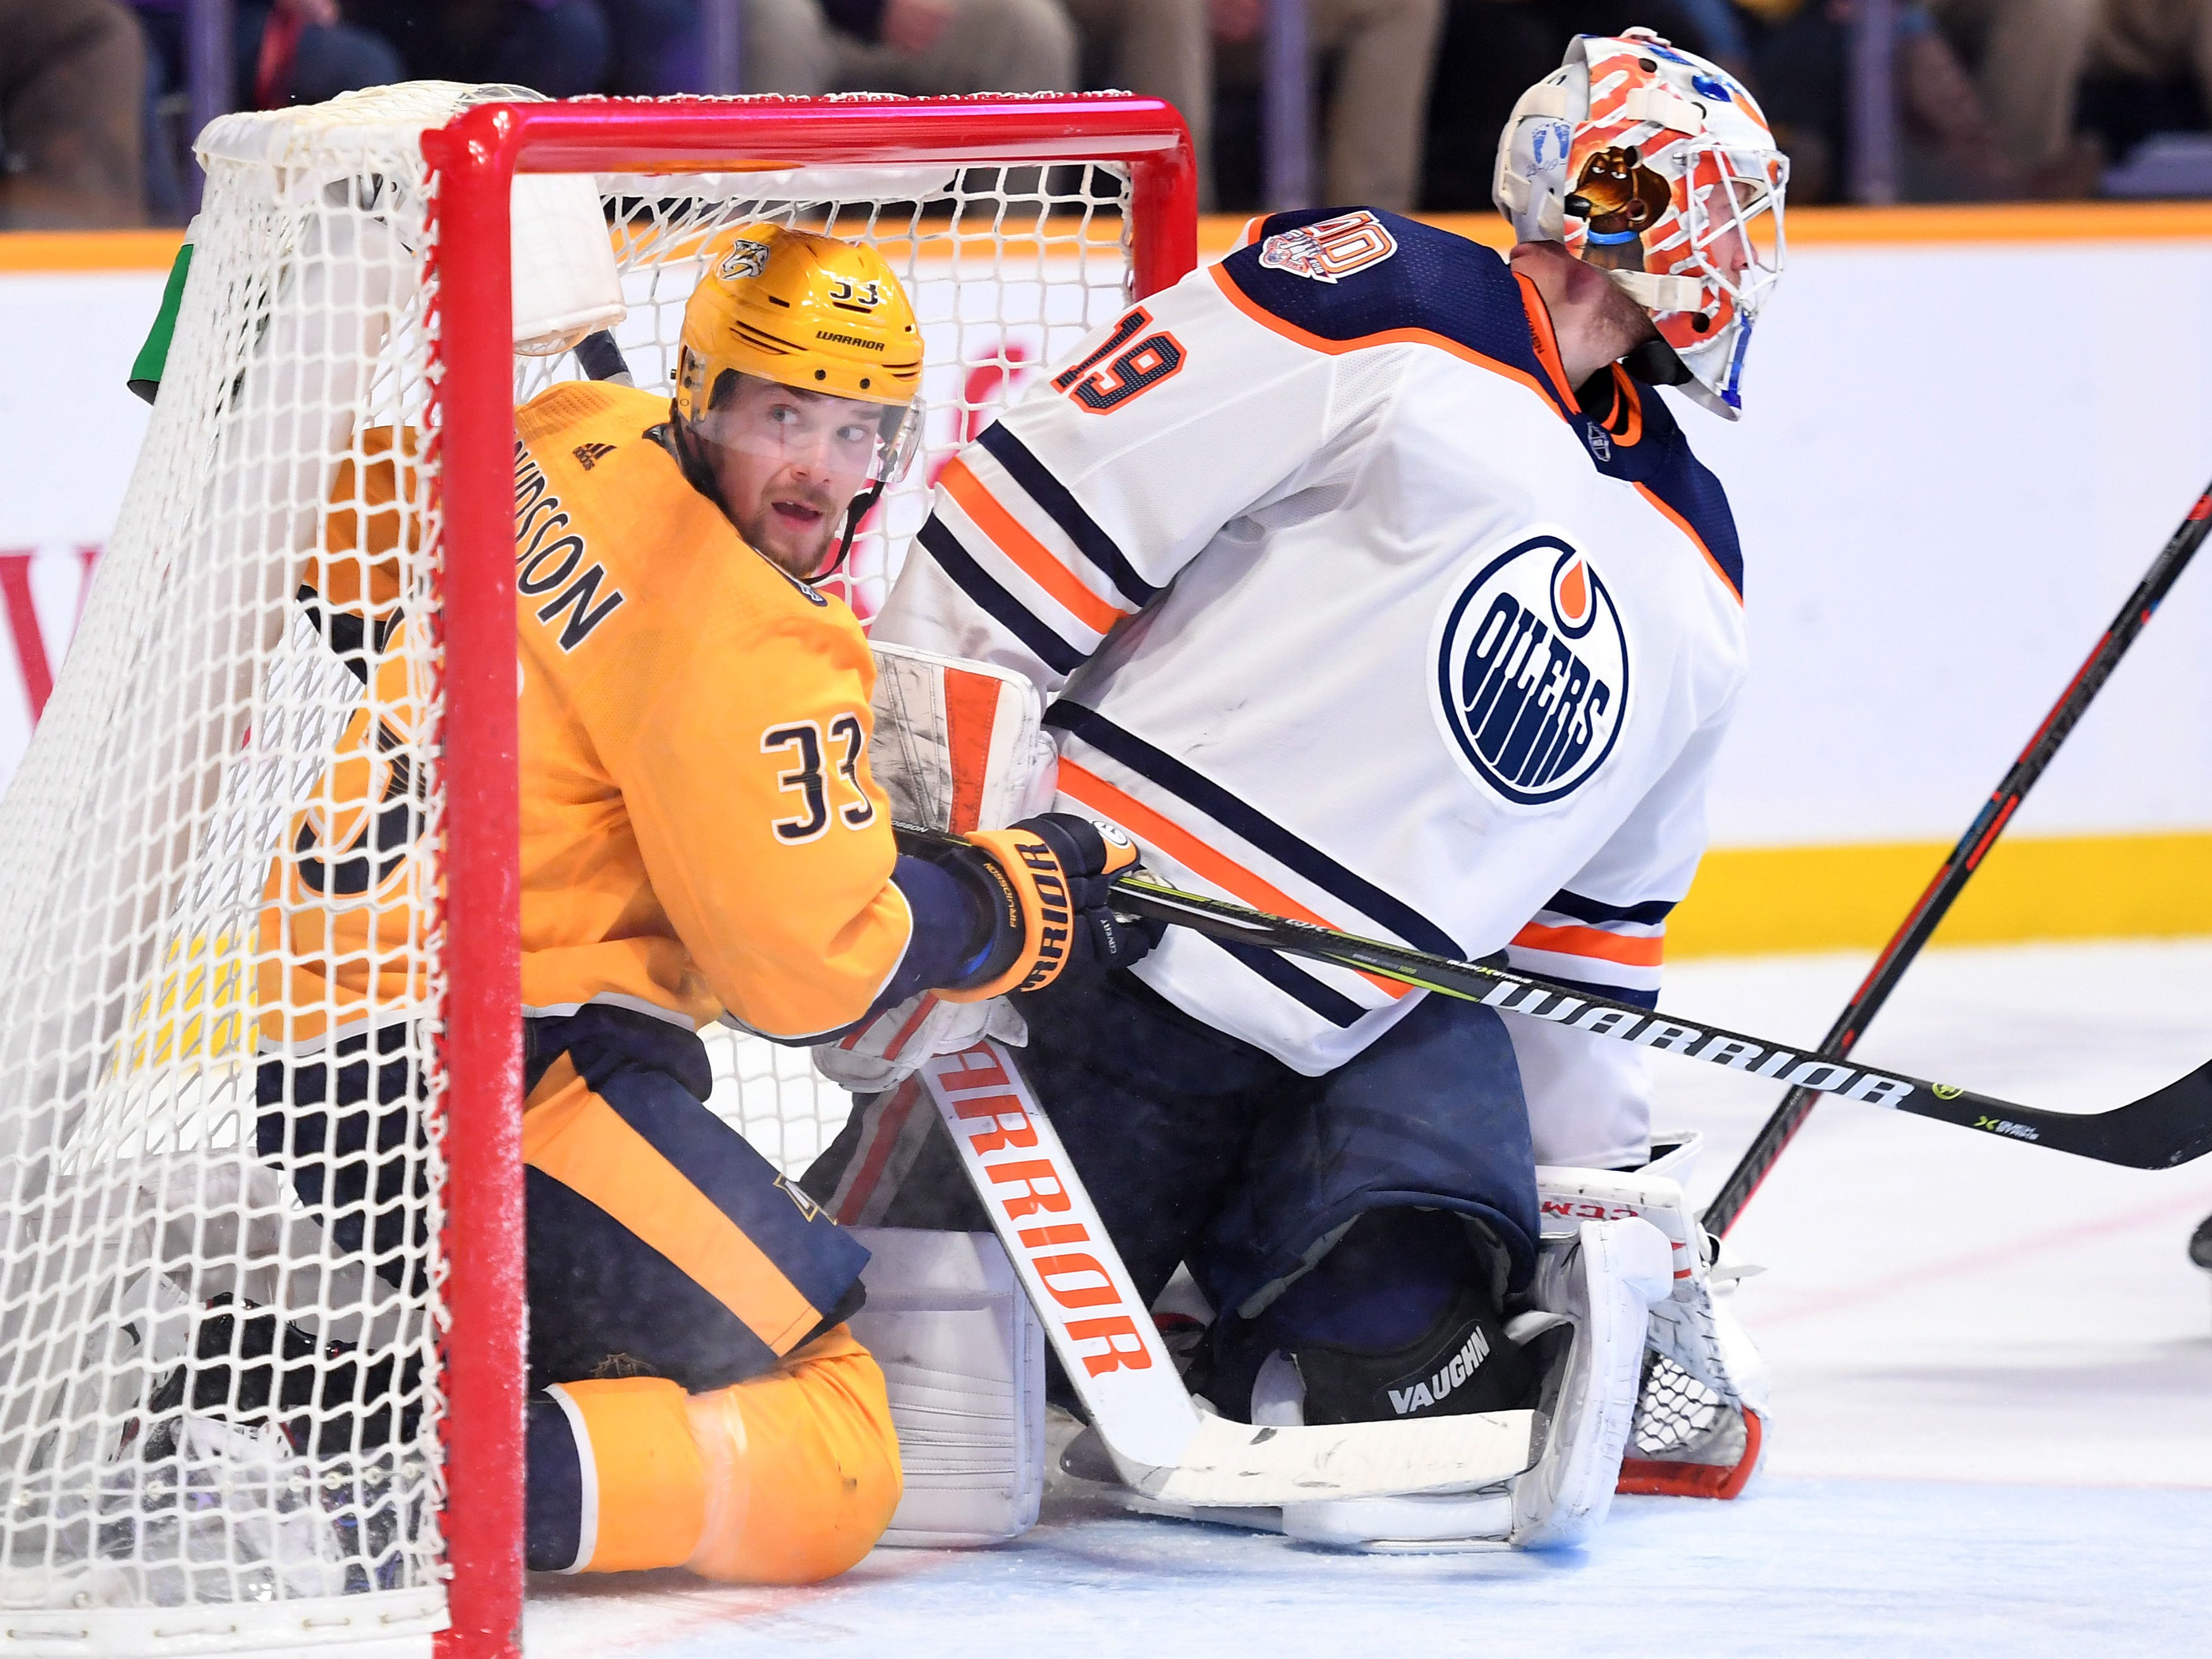 Nashville Predators right wing Viktor Arvidsson (33) looks to an official after being hit and crashing into Edmonton Oilers goaltender Mikko Koskinen (19) during the third period at Bridgestone Arena.